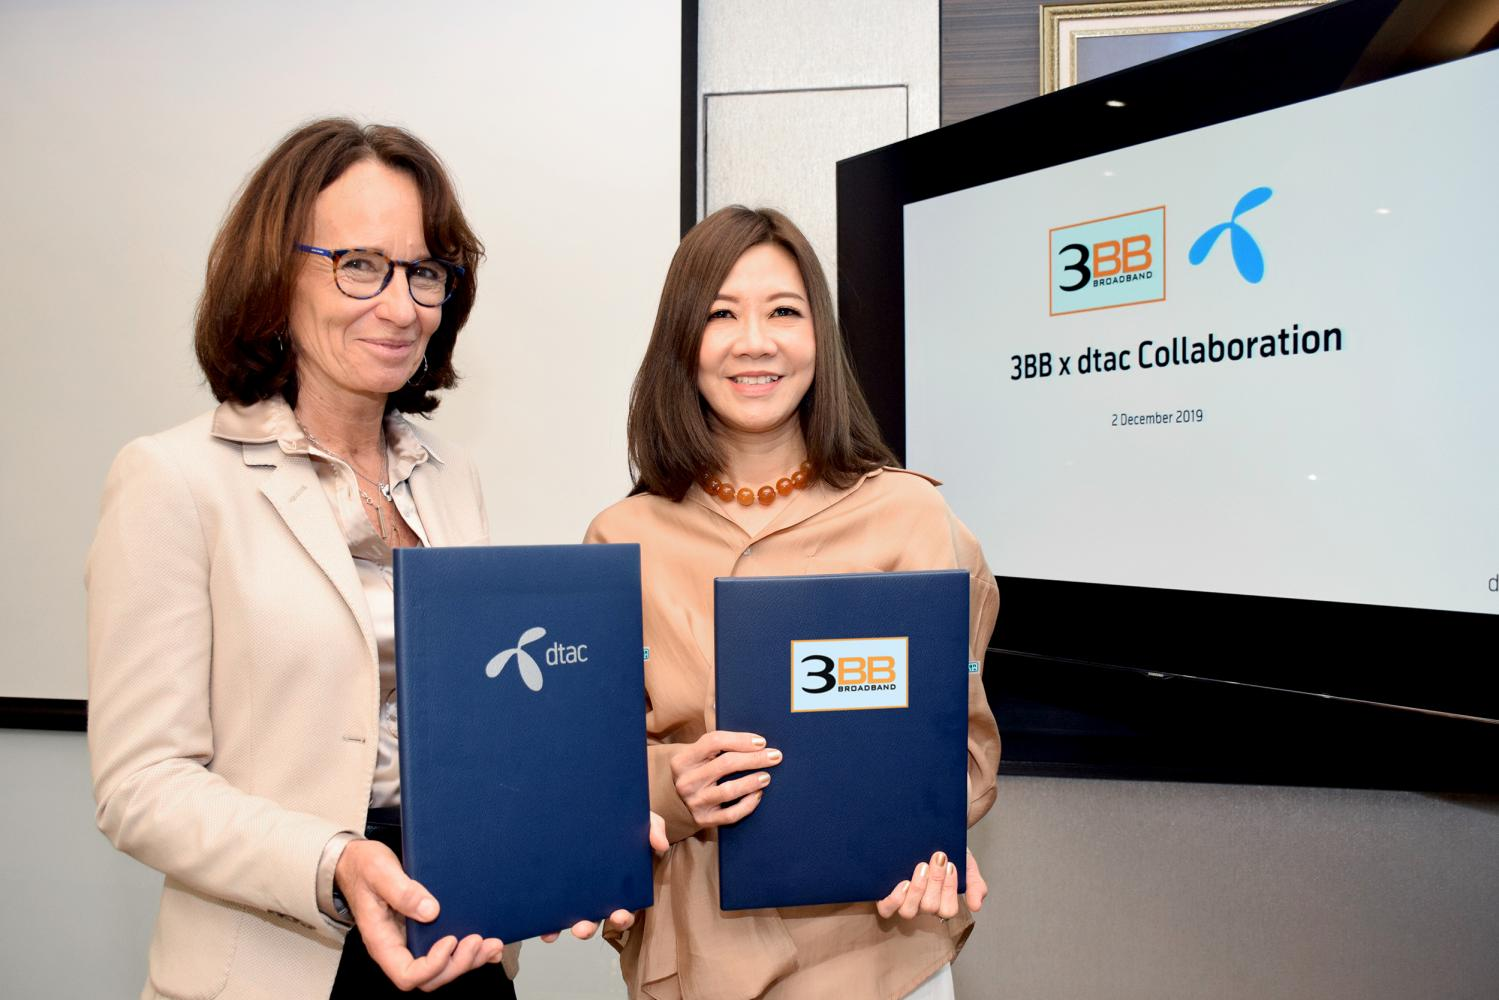 Alexandra Reich, chief executive of DTAC, left, and Saijai Kitsin, director of Triple T Broadband, promote the collaboration.